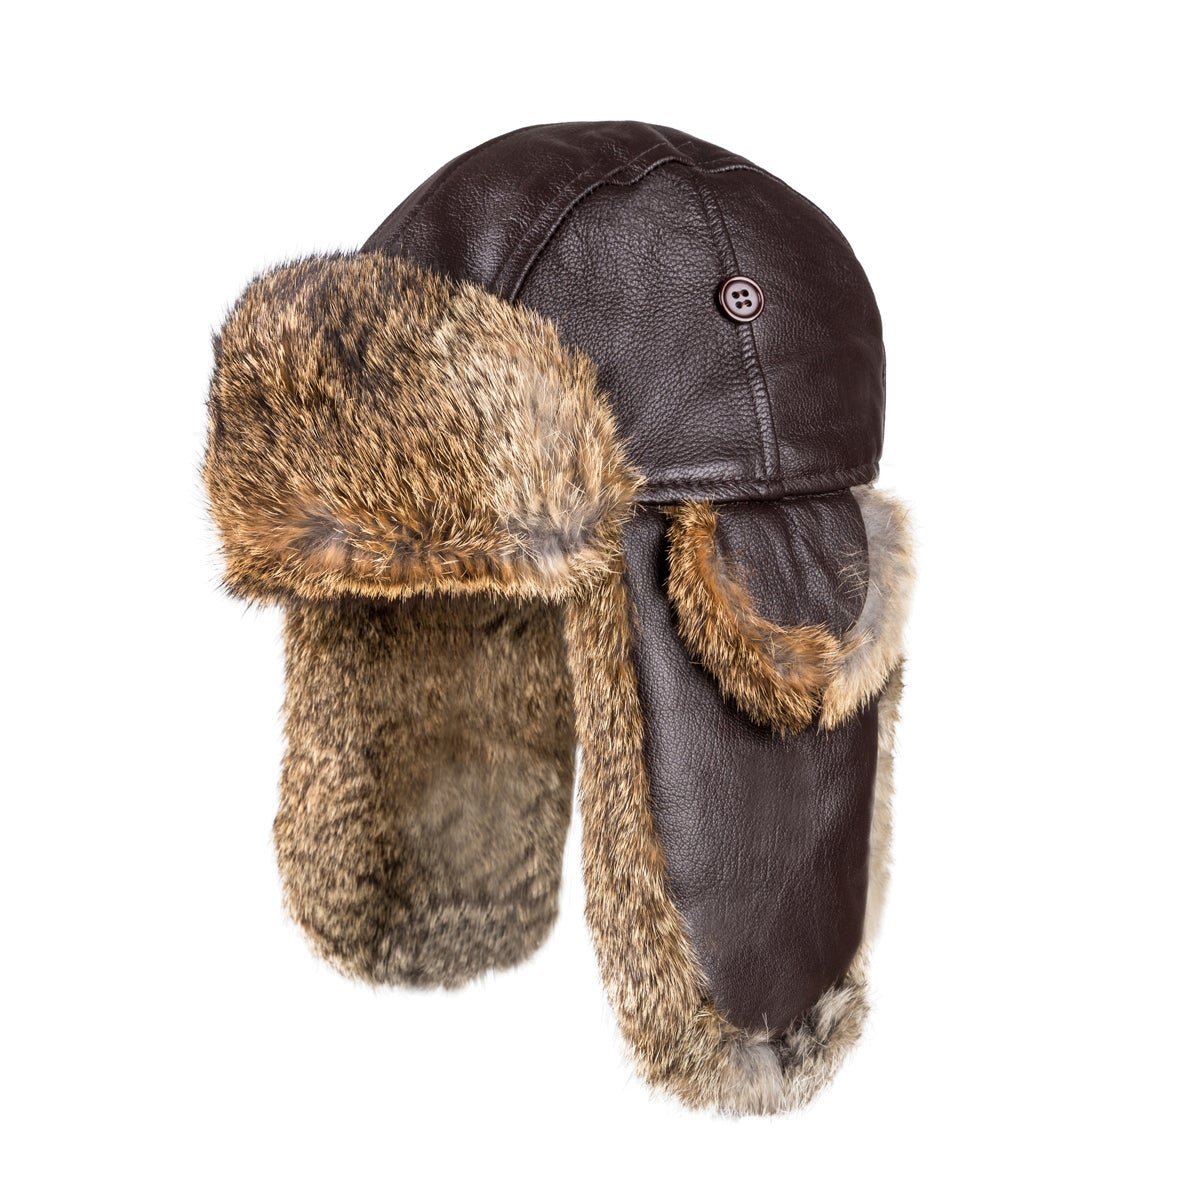 OZWEAR UGG VINTAGE RODEO LEATHER RABBIT FUR AVIATOR HAT